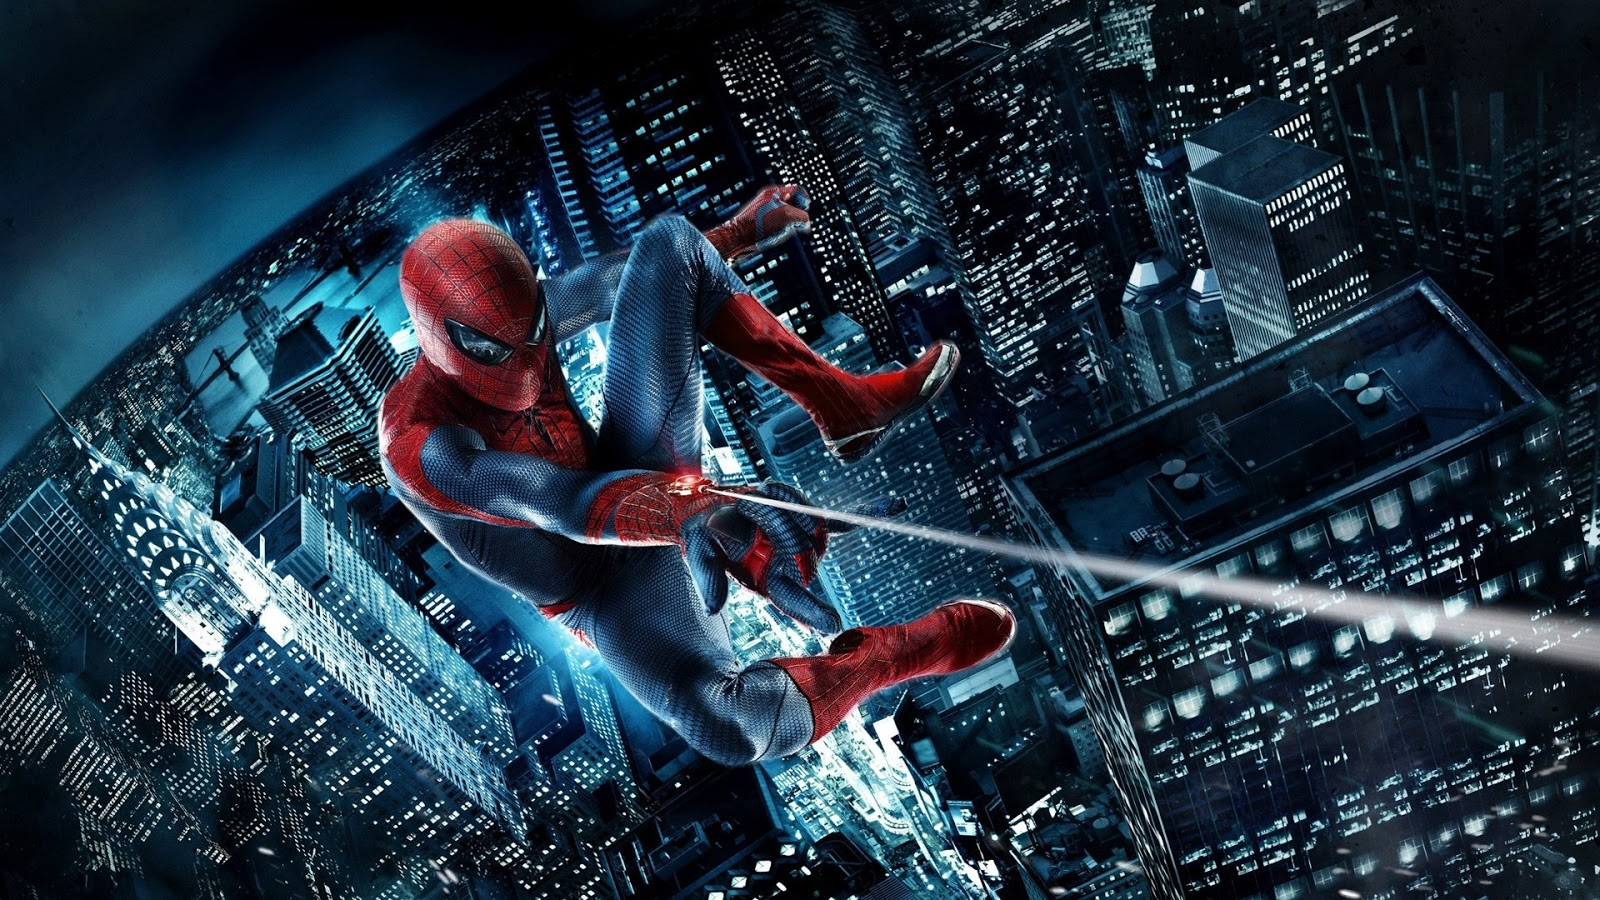 Spiderman Images  HD New